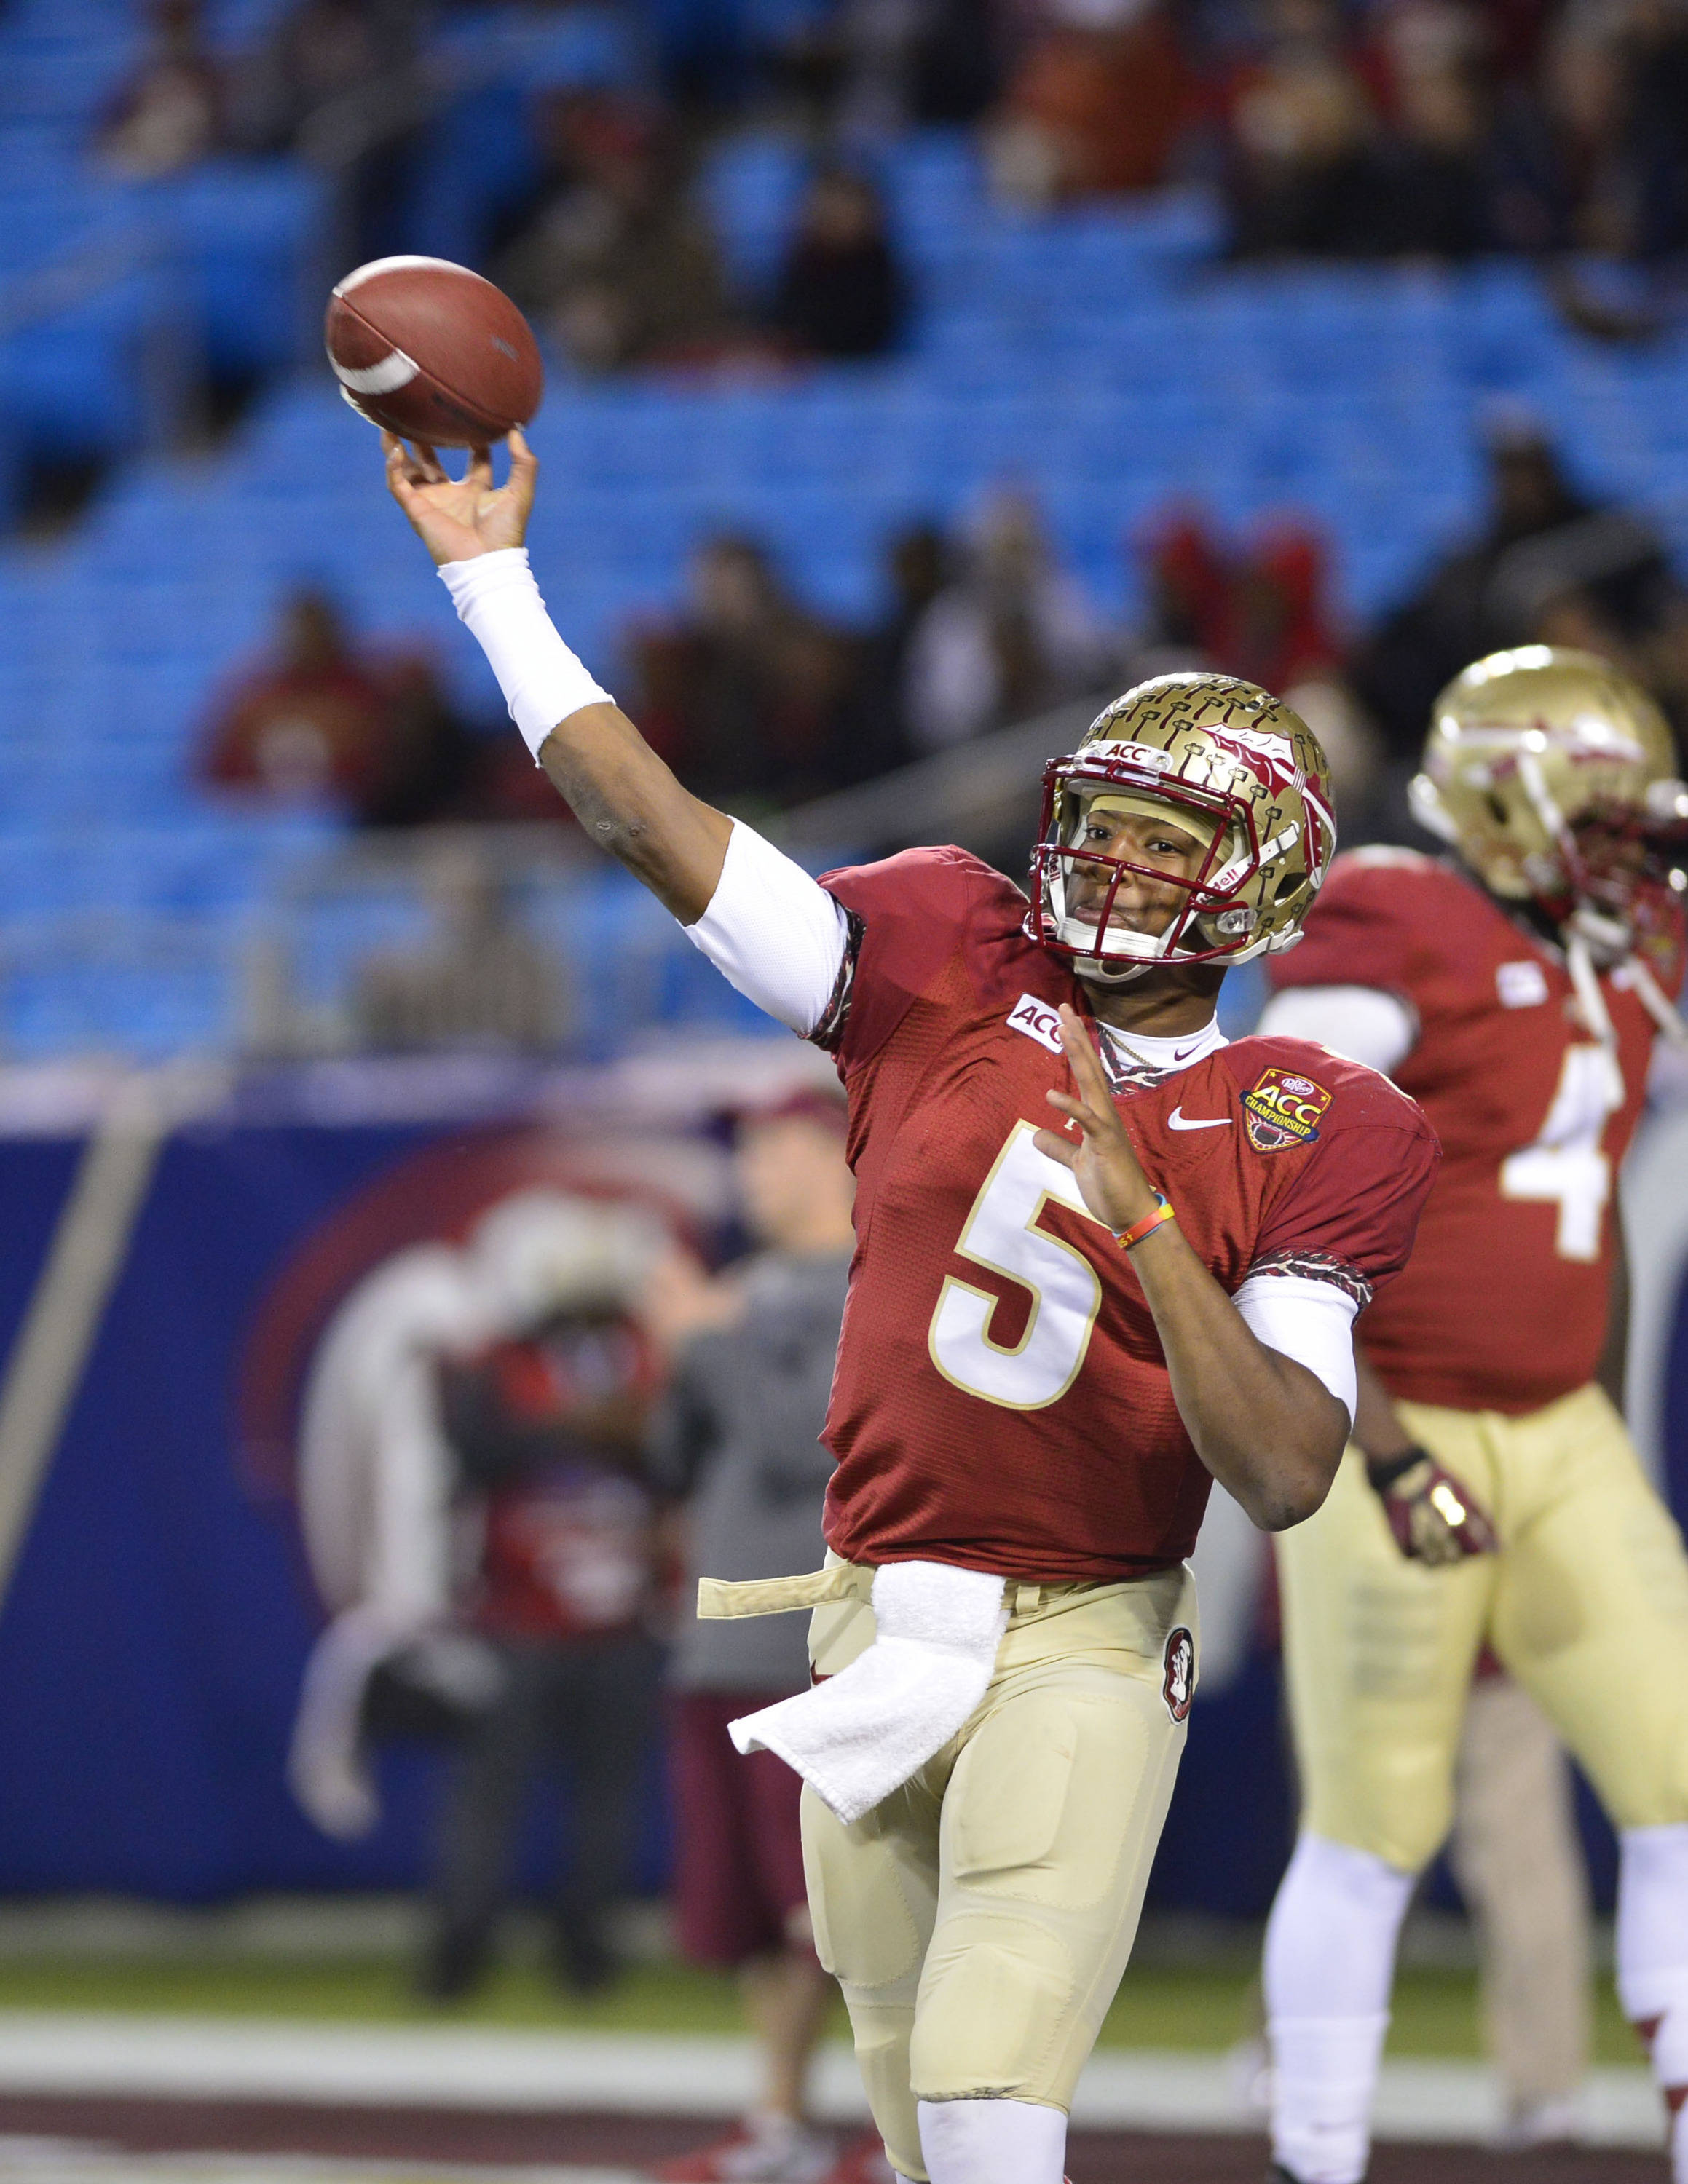 Dec 7, 2013; Charlotte, NC, USA; Florida State Seminoles quarterback Jameis Winston (5) warms up before the game at Bank of America Stadium. Mandatory Credit: Bob Donnan-USA TODAY Sports